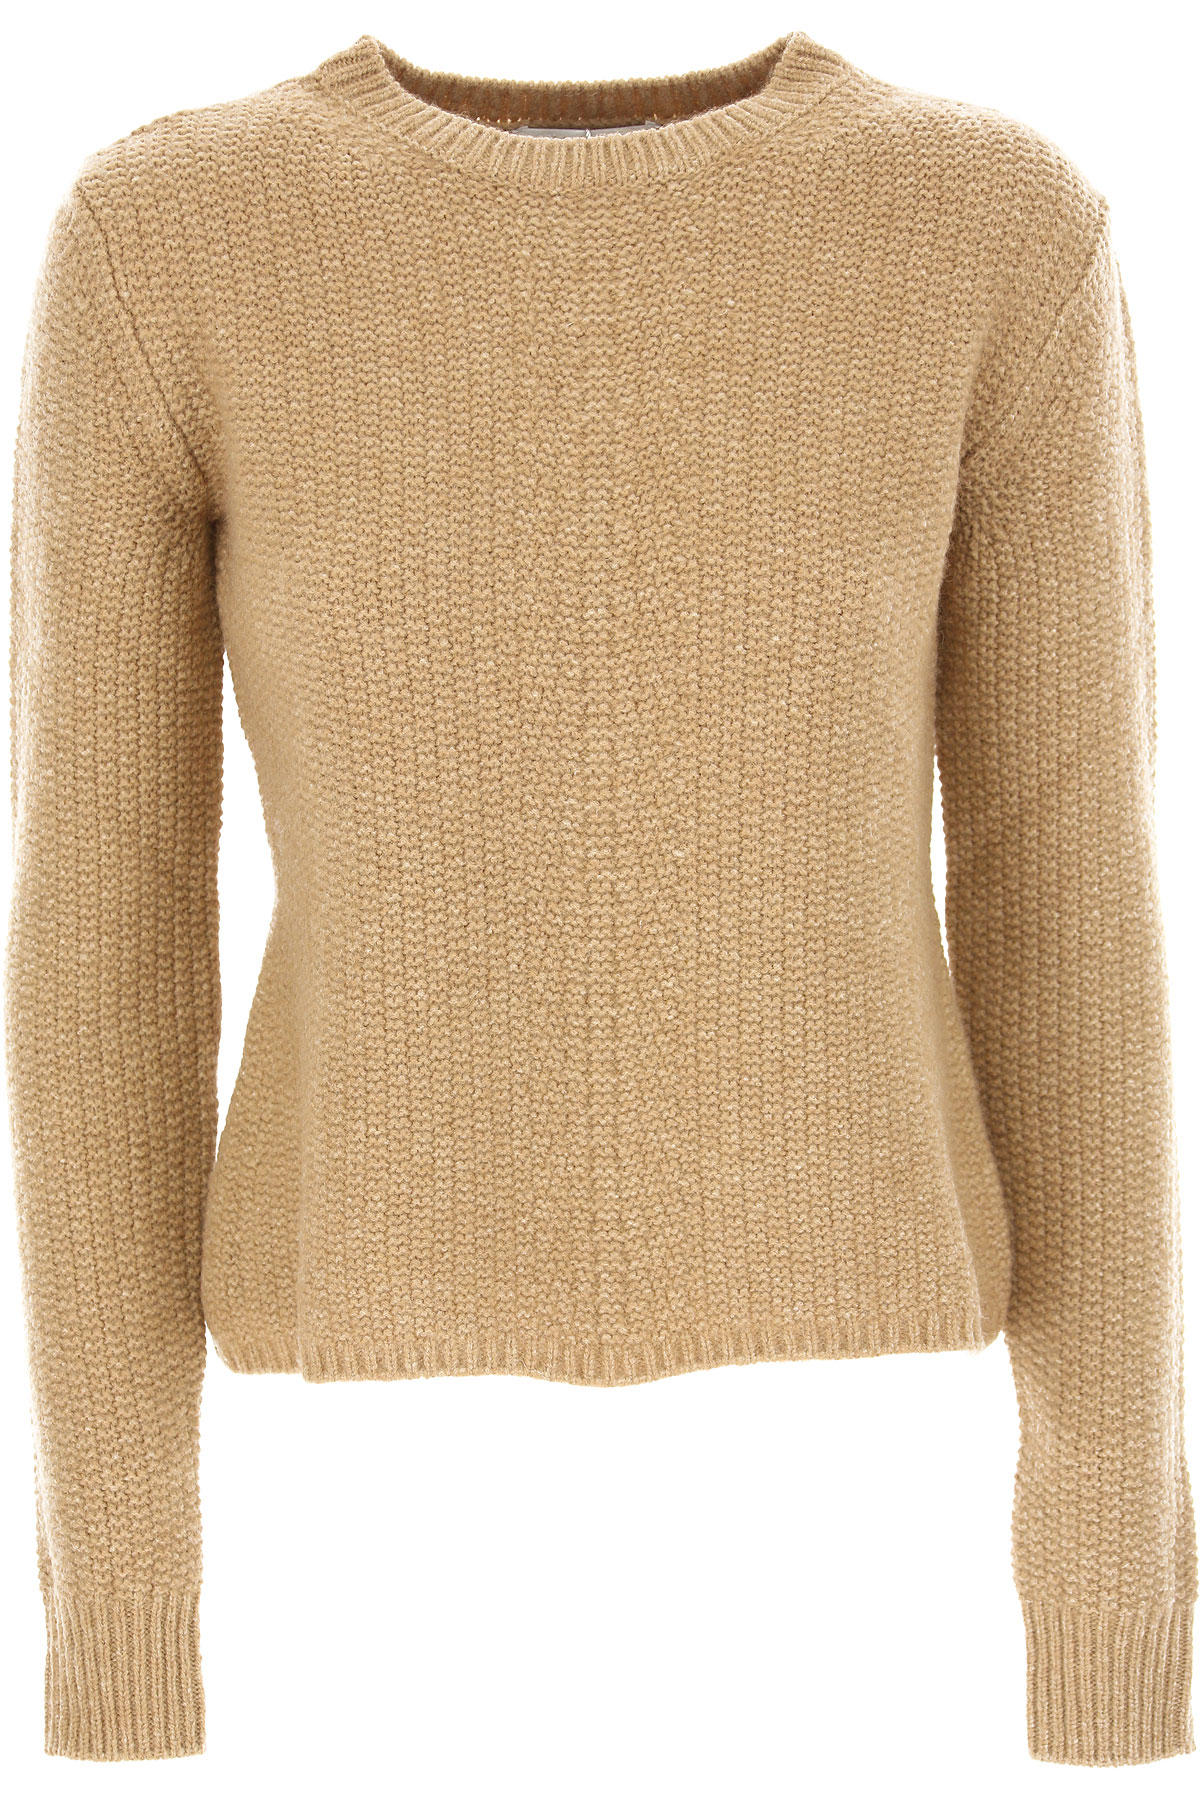 Image of Weekend by Max Mara Sweater for Women Jumper, Camel, Wool, 2017, 4 8